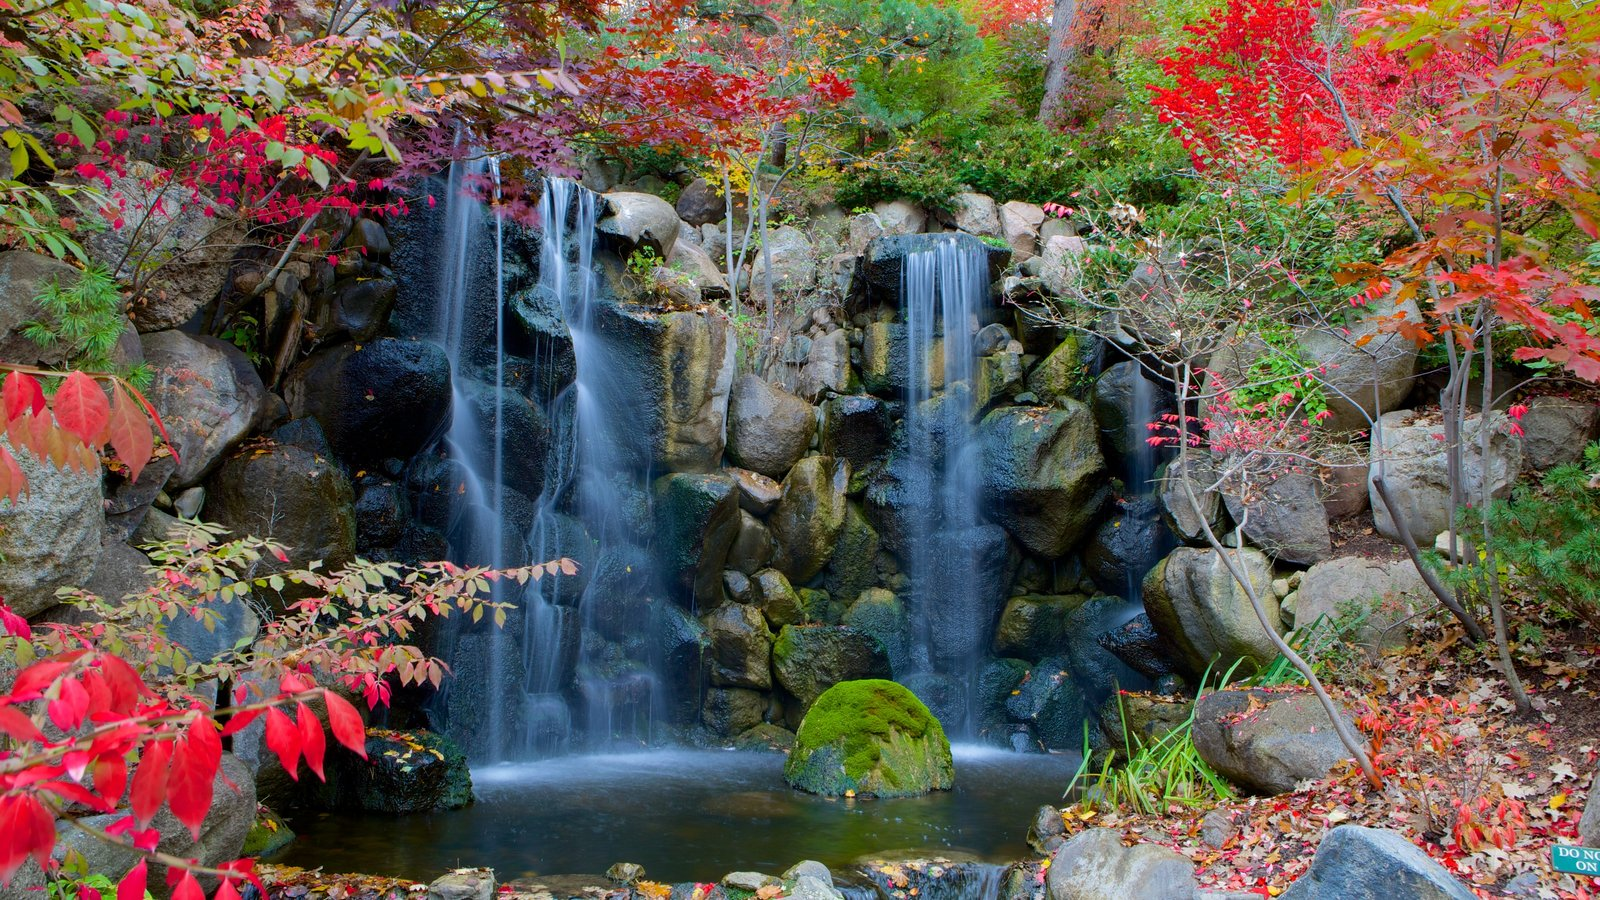 Anderson Japanese Gardens showing autumn leaves and a cascade